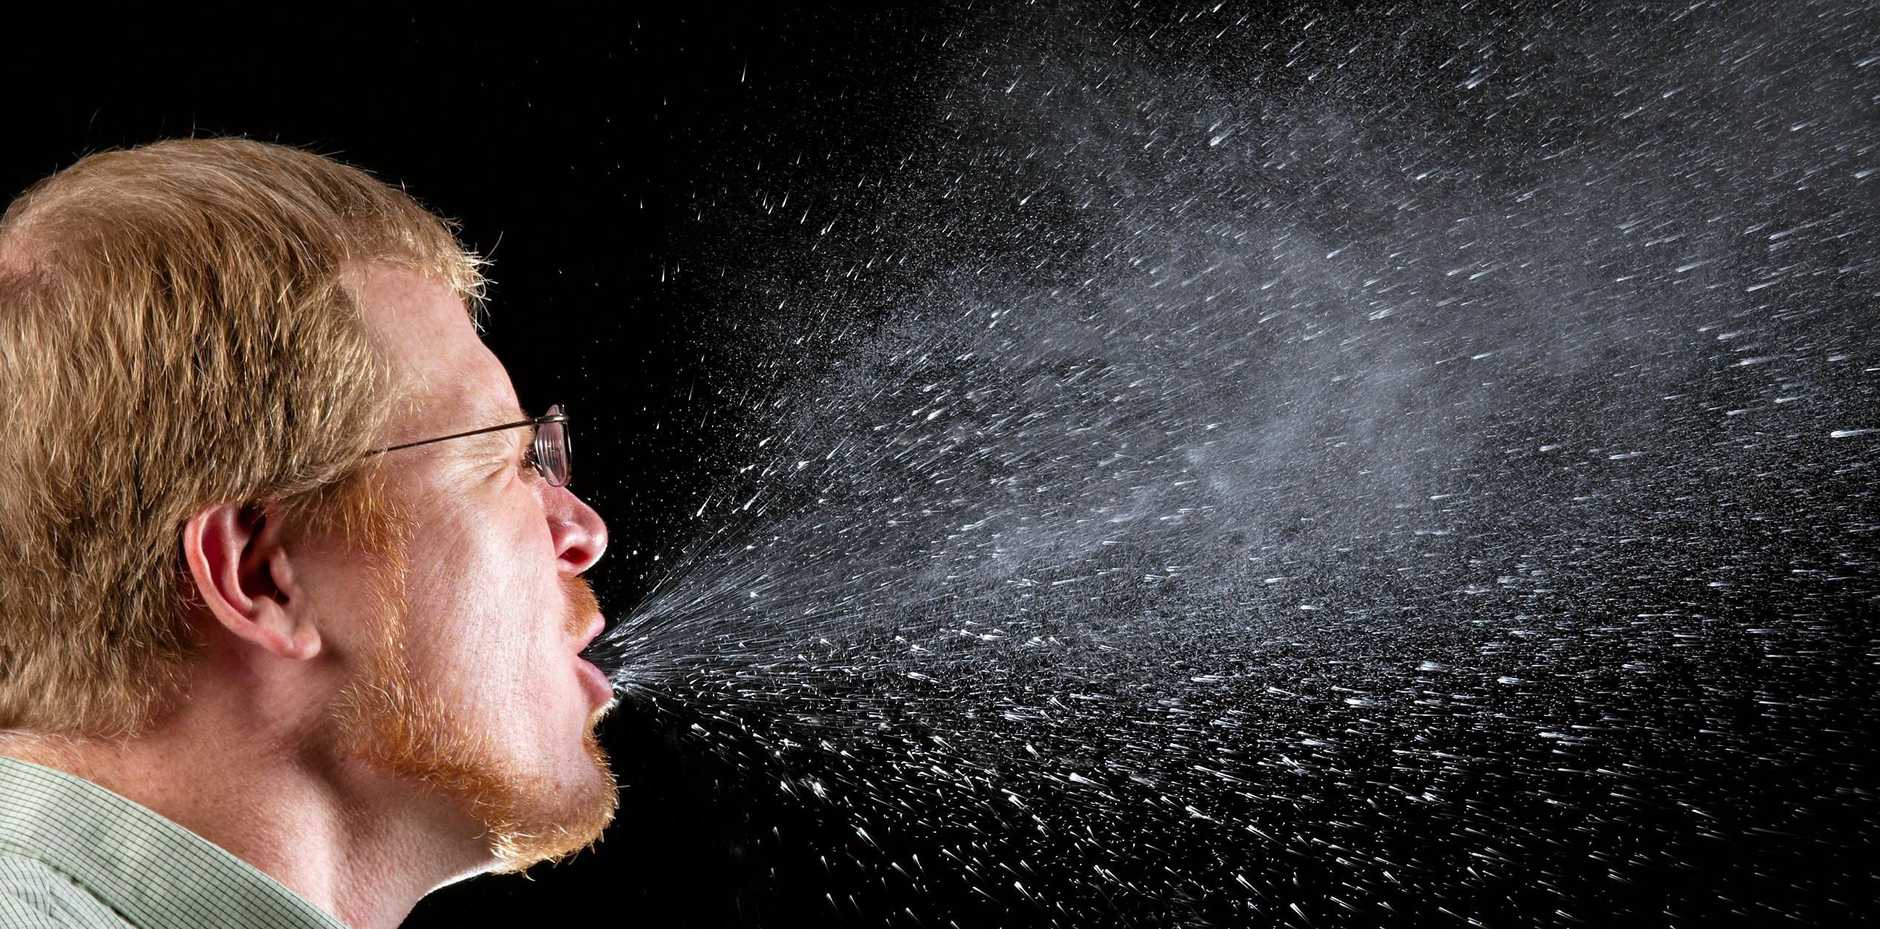 A slow motion sneeze - but flu can spread quickly.